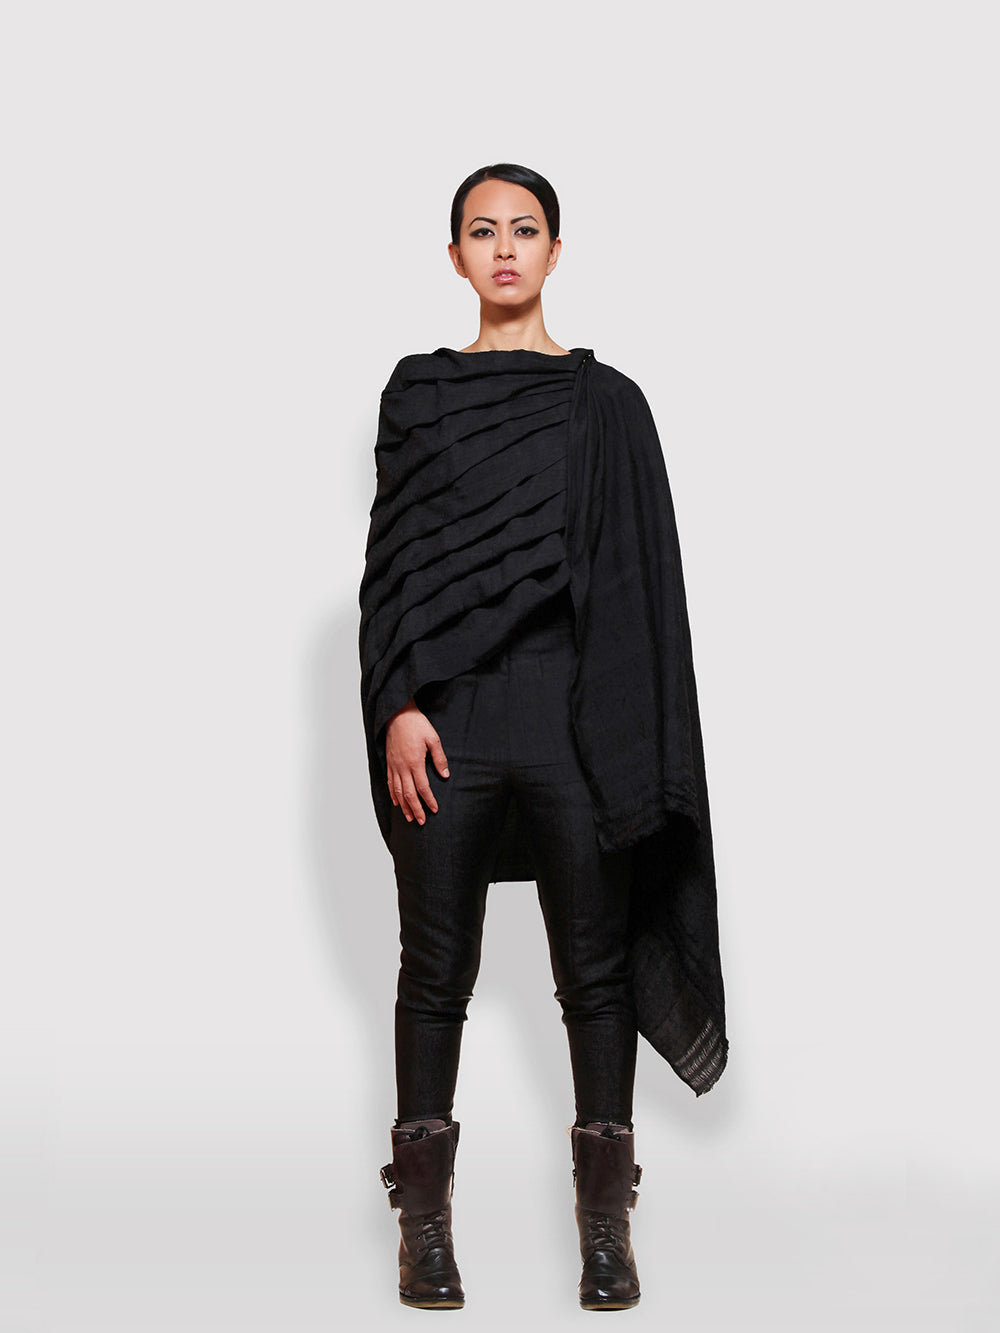 Hooded & pleated black wrap with hidden zipper